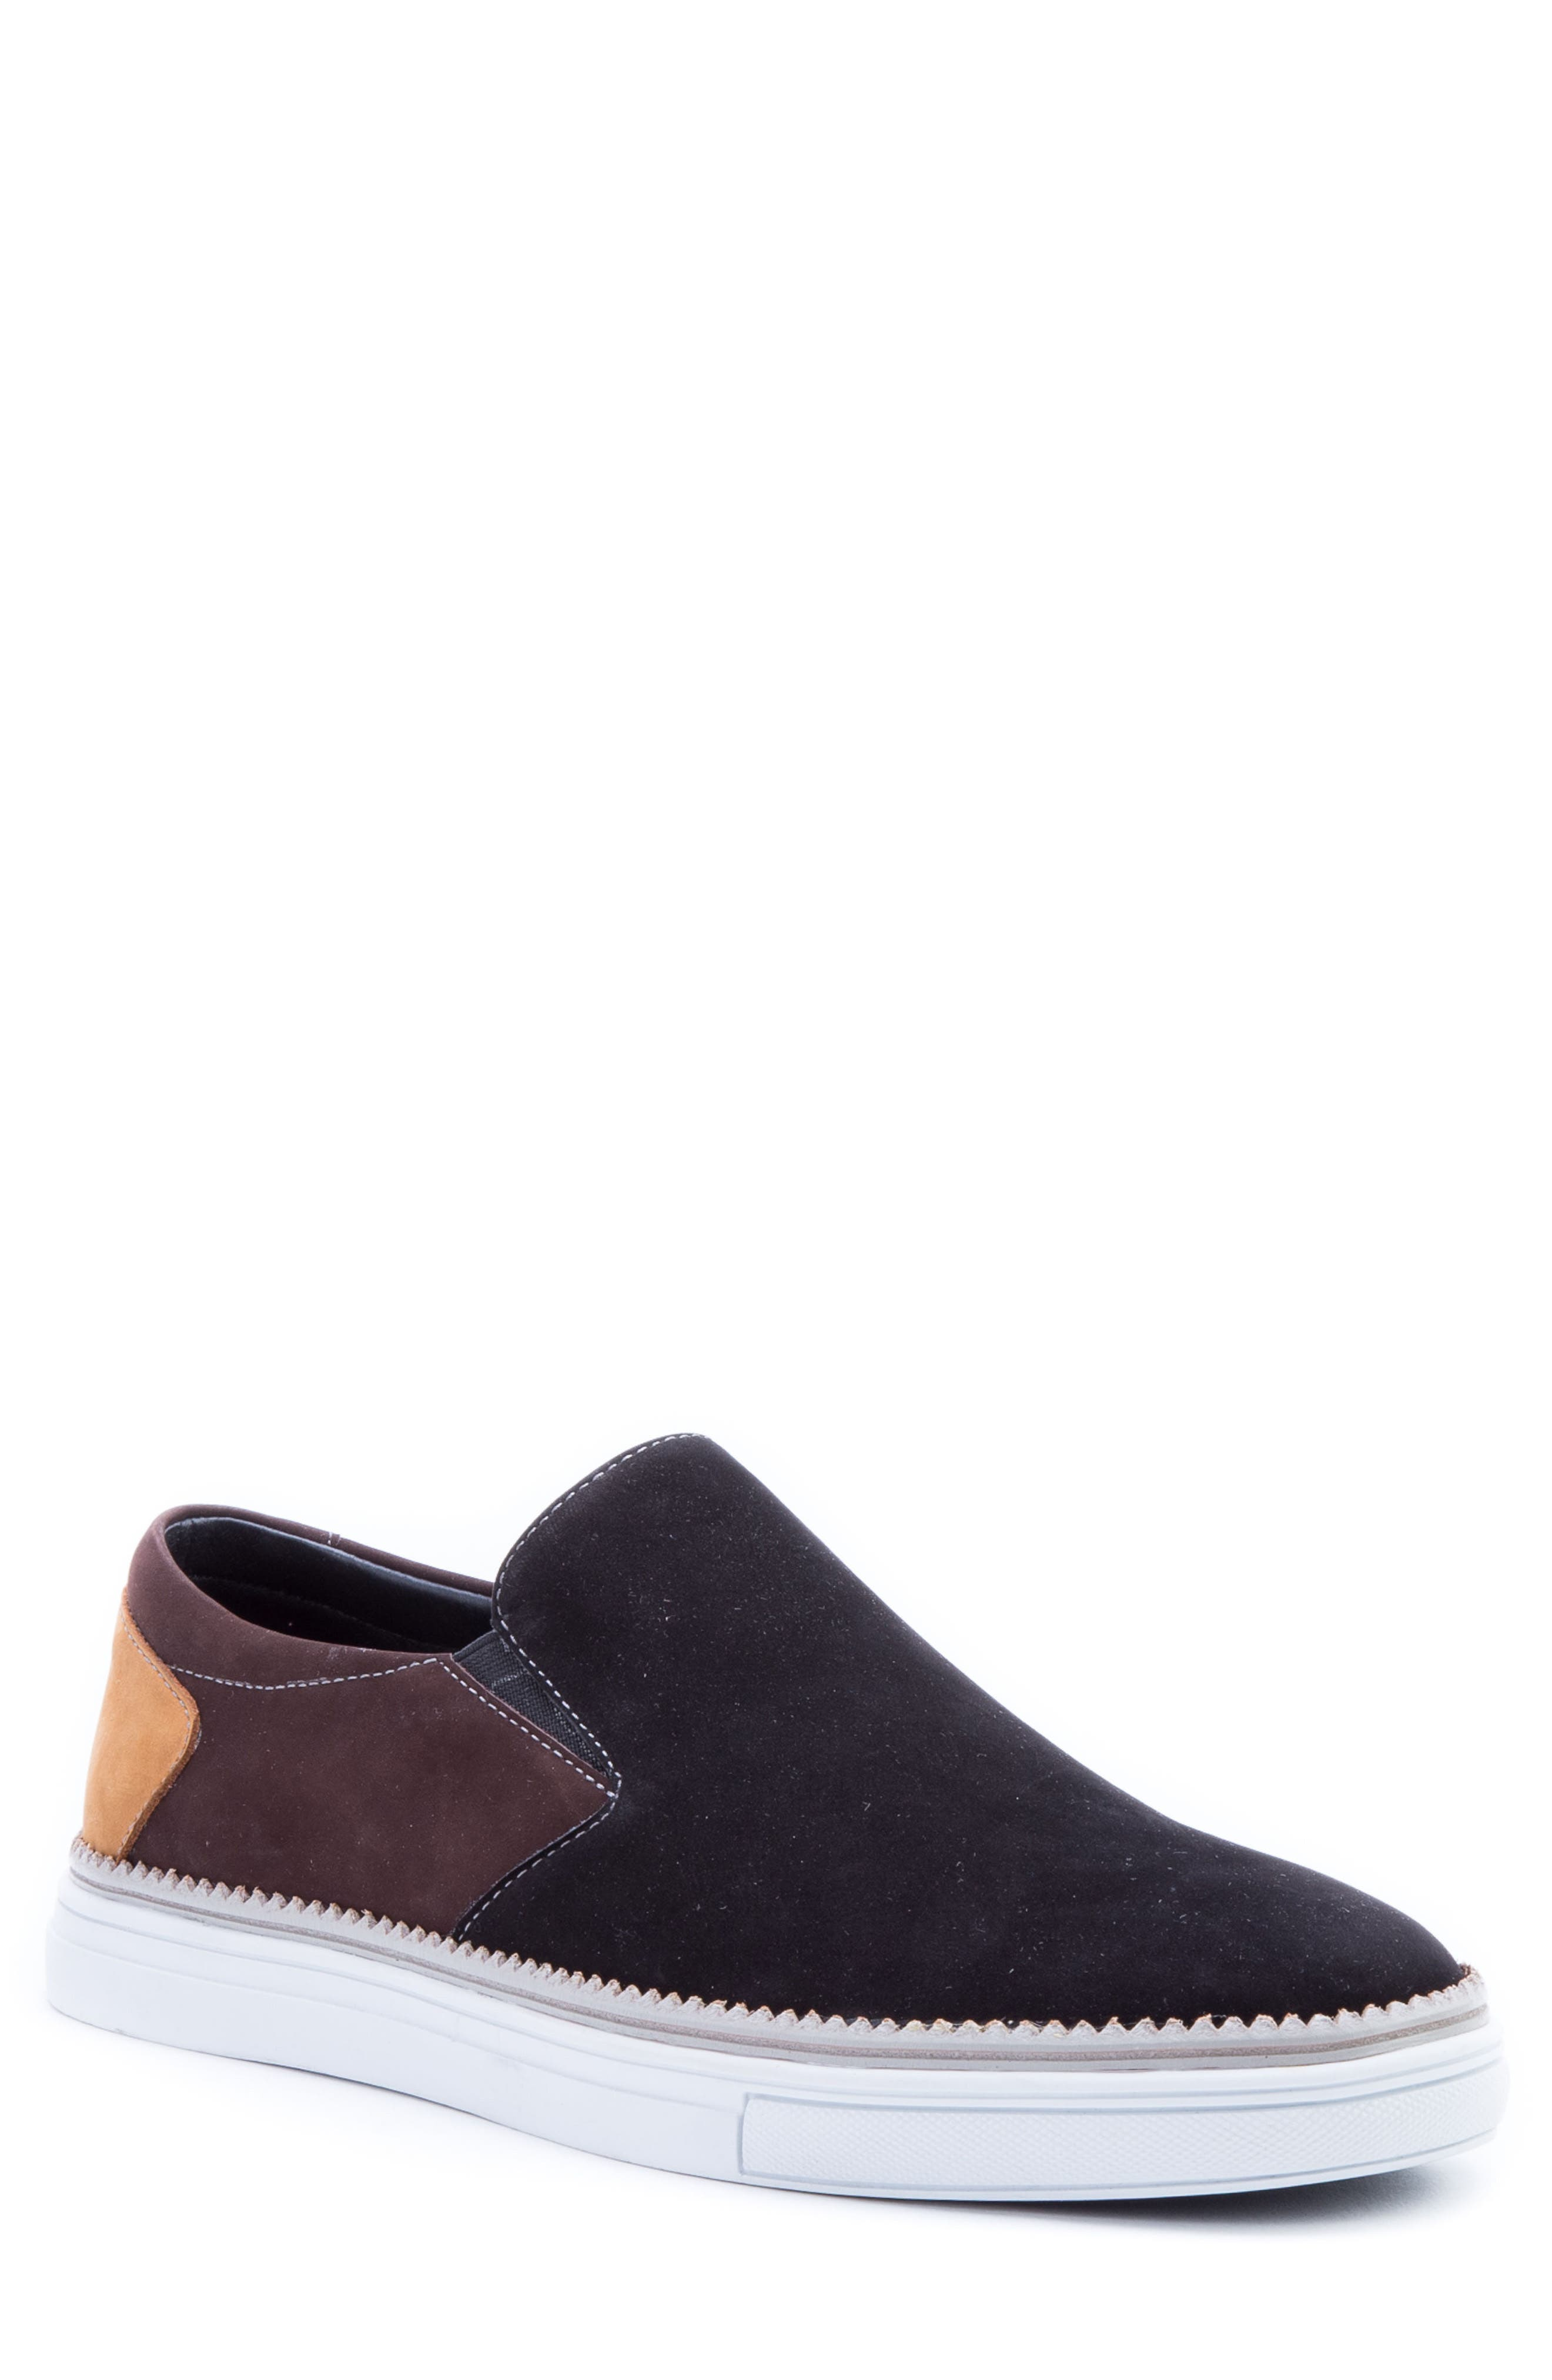 Rivera Colorblocked Slip-On Sneaker,                             Main thumbnail 1, color,                             BLACK SUEDE